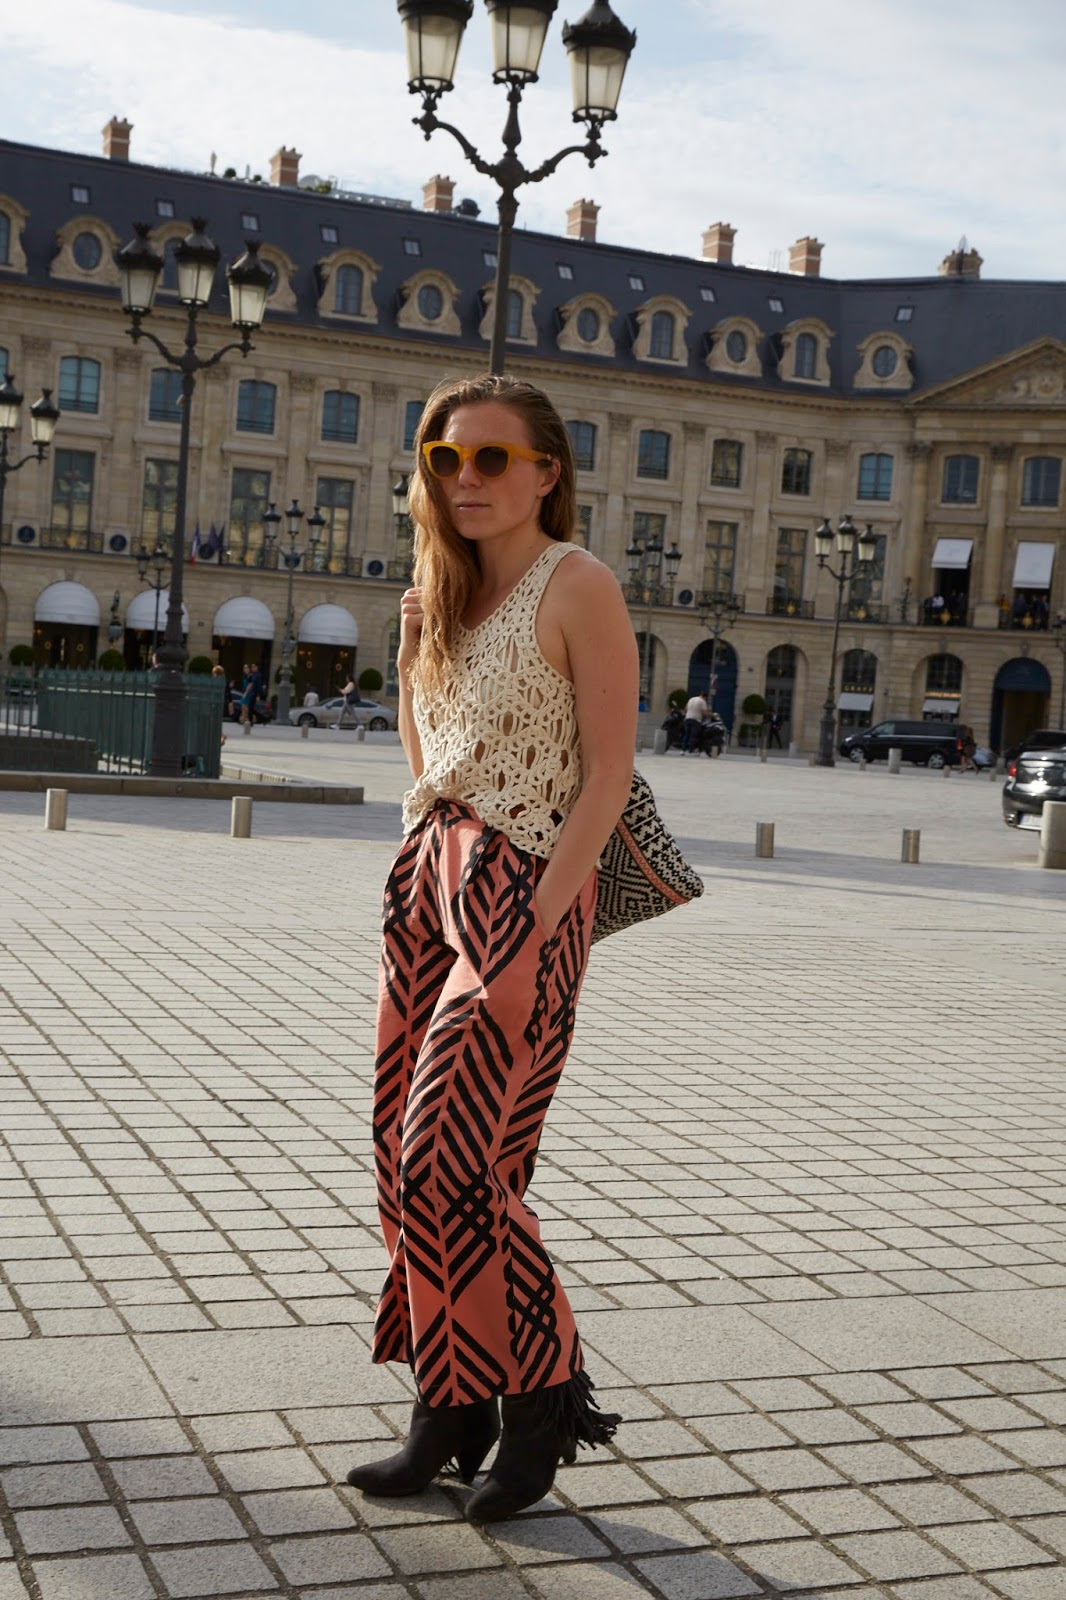 Matter Prints, Trousers, Paris, Watermelon, Artisan, Eco-Friendly, Eco, Ethical, Fairtrade, Slow Fashion, Eco Fashion, Ethical Fashion, Sustainable Fashion, Luxury Fashion, Sustainable, Sustainability, Organic, Organic Cotton, AZO Dye